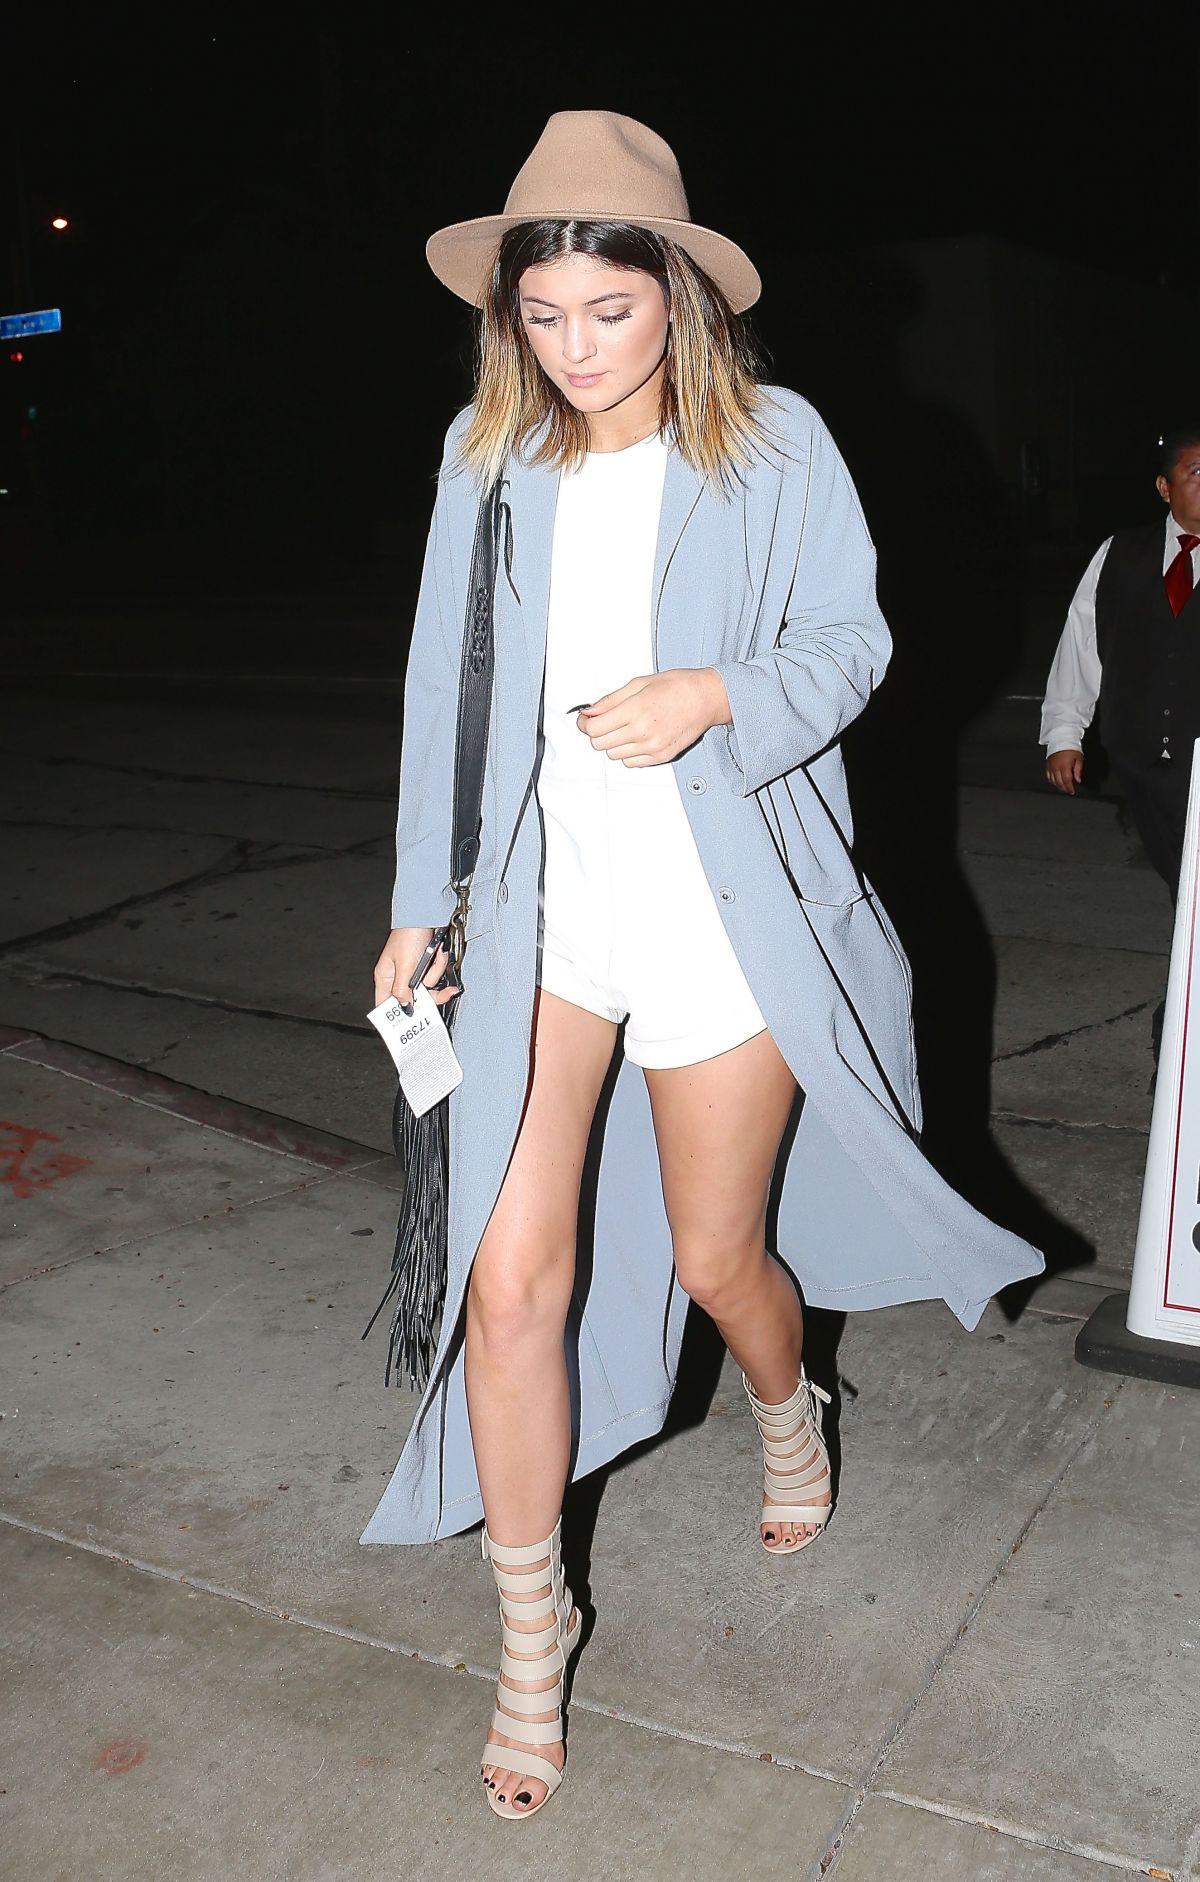 KYLIE JENNER Arrives to Cecconi